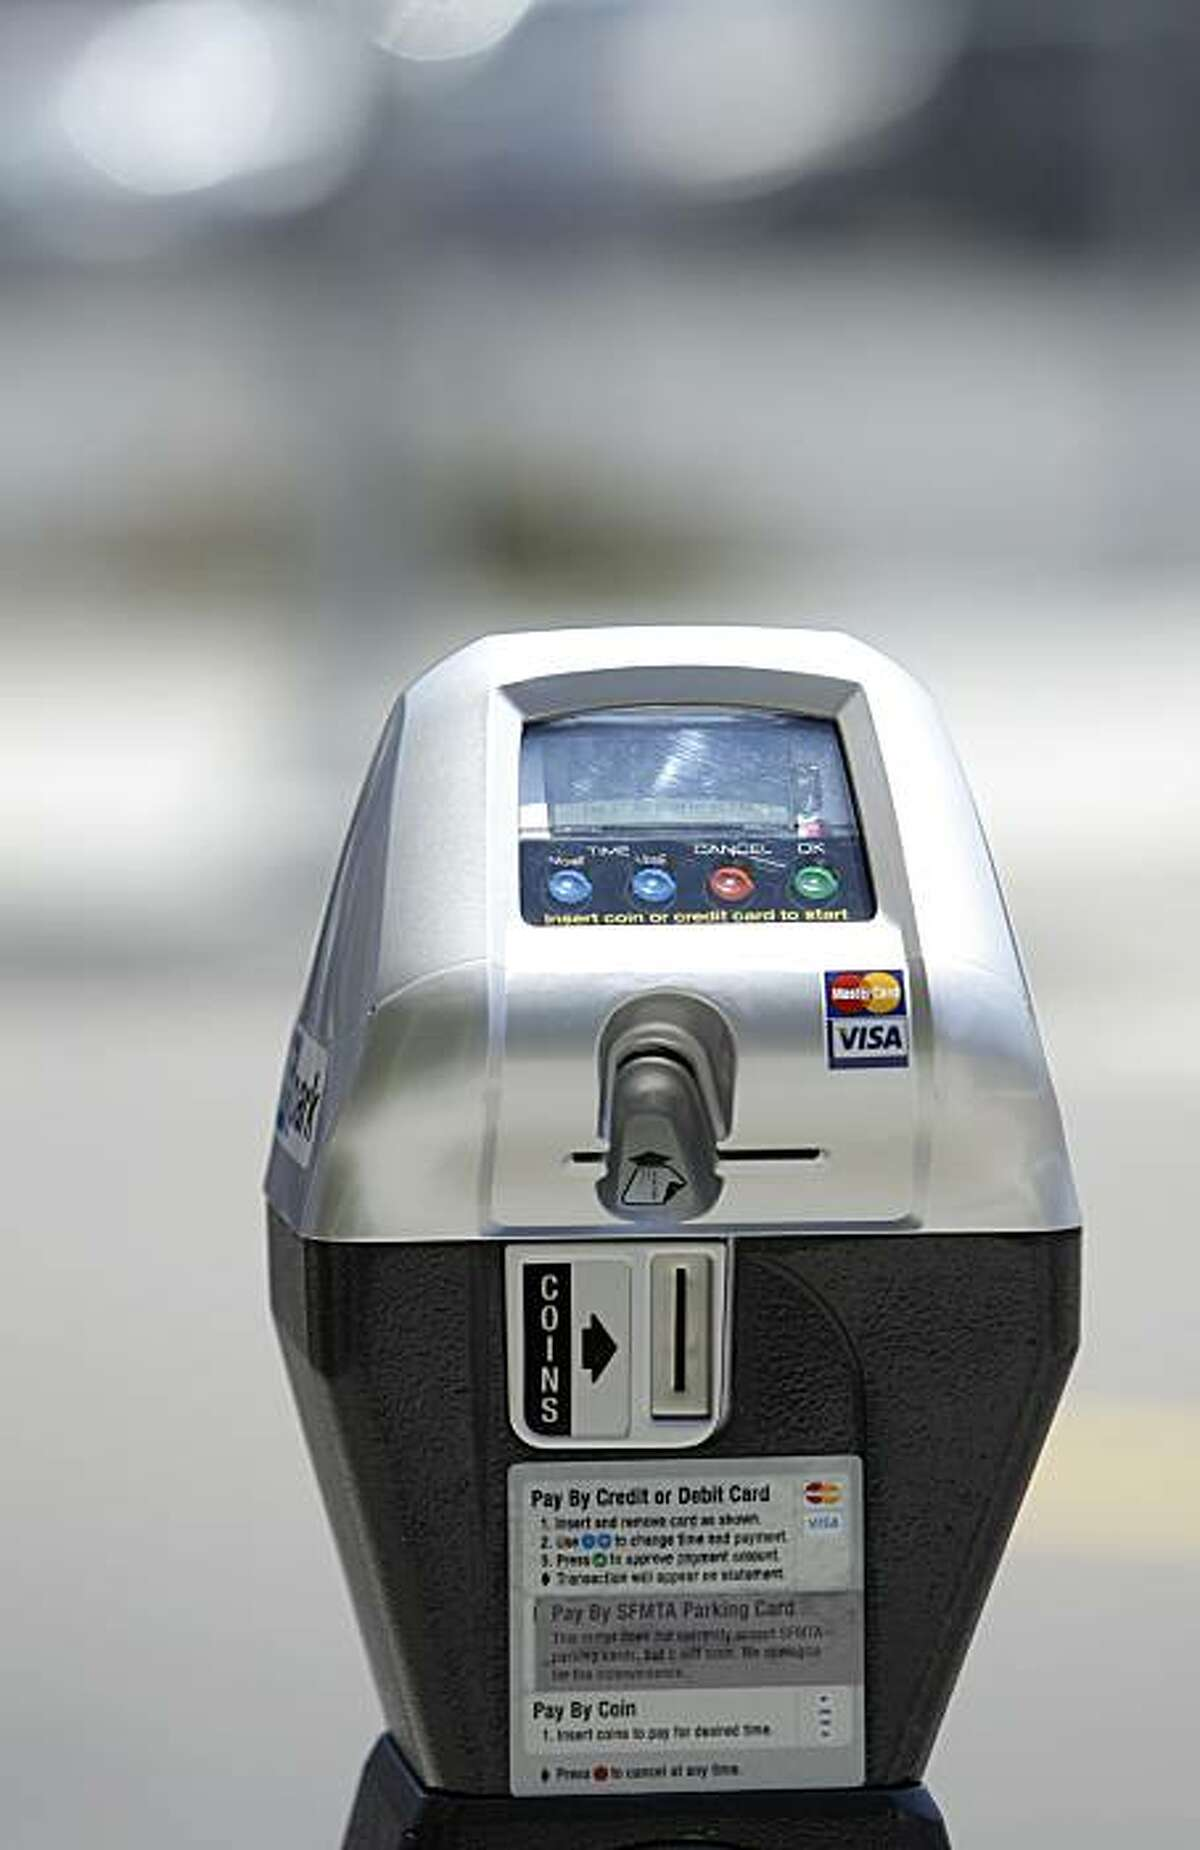 A new San Francisco parking meter intended to help San Francisco officials test how meter rates affect drivers' parking choices is shown on Hayes Street in San Francisco, Tuesday, July 27, 2010. Officials say starting early next year, they will begin adjusting the meters' rates and time limits. To see how drivers react, sensors in the ground will monitor empty spaces and how long each vehicle stays parked in one spot.